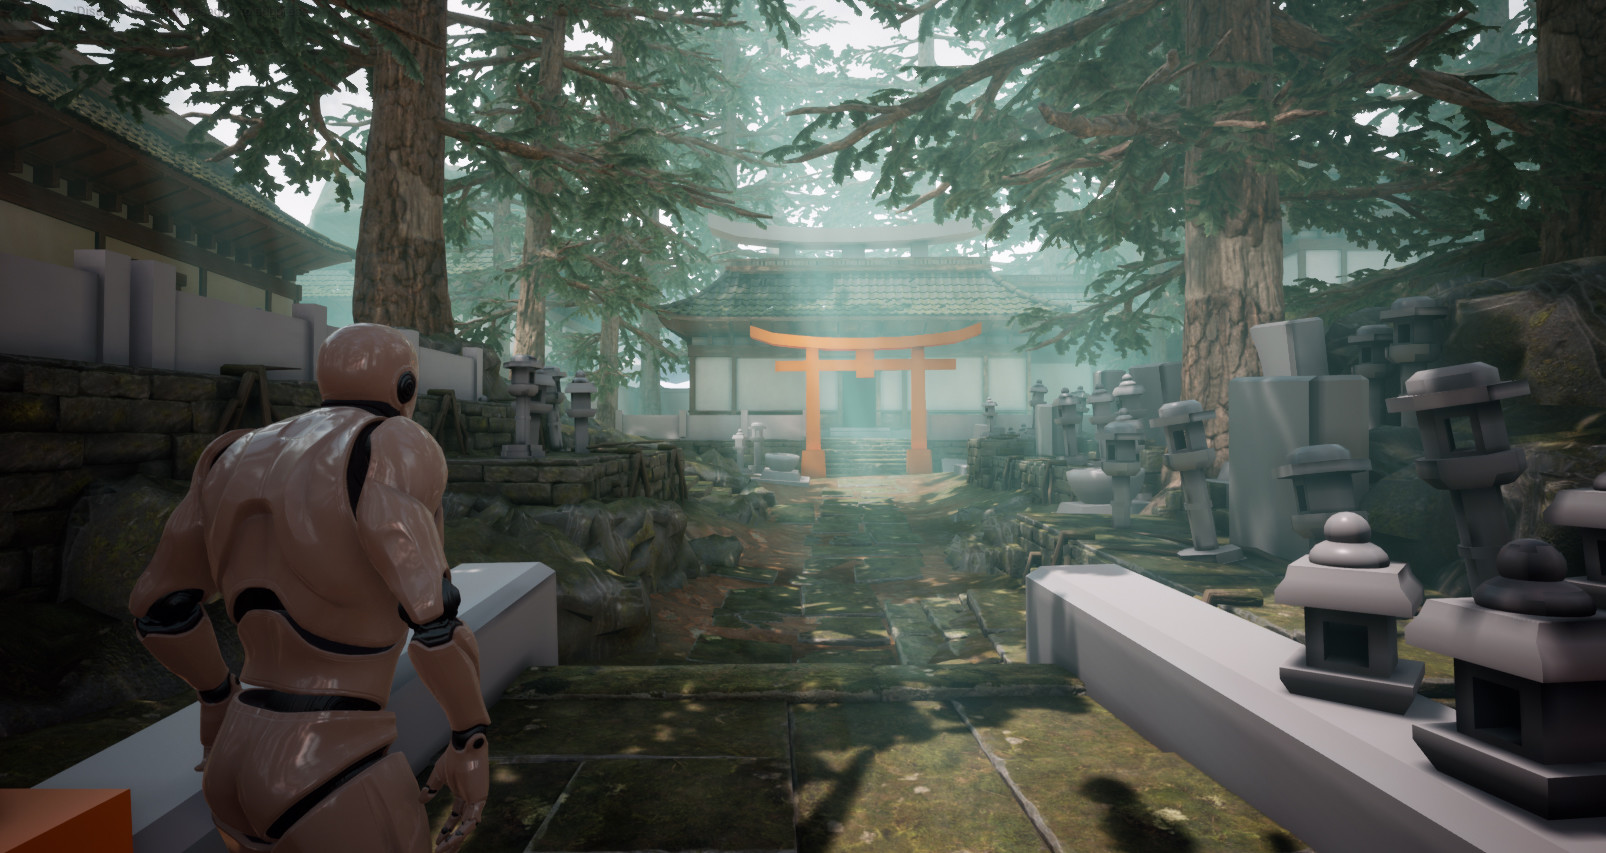 ArtStation - Tim Simpson's submission on Feudal Japan: The